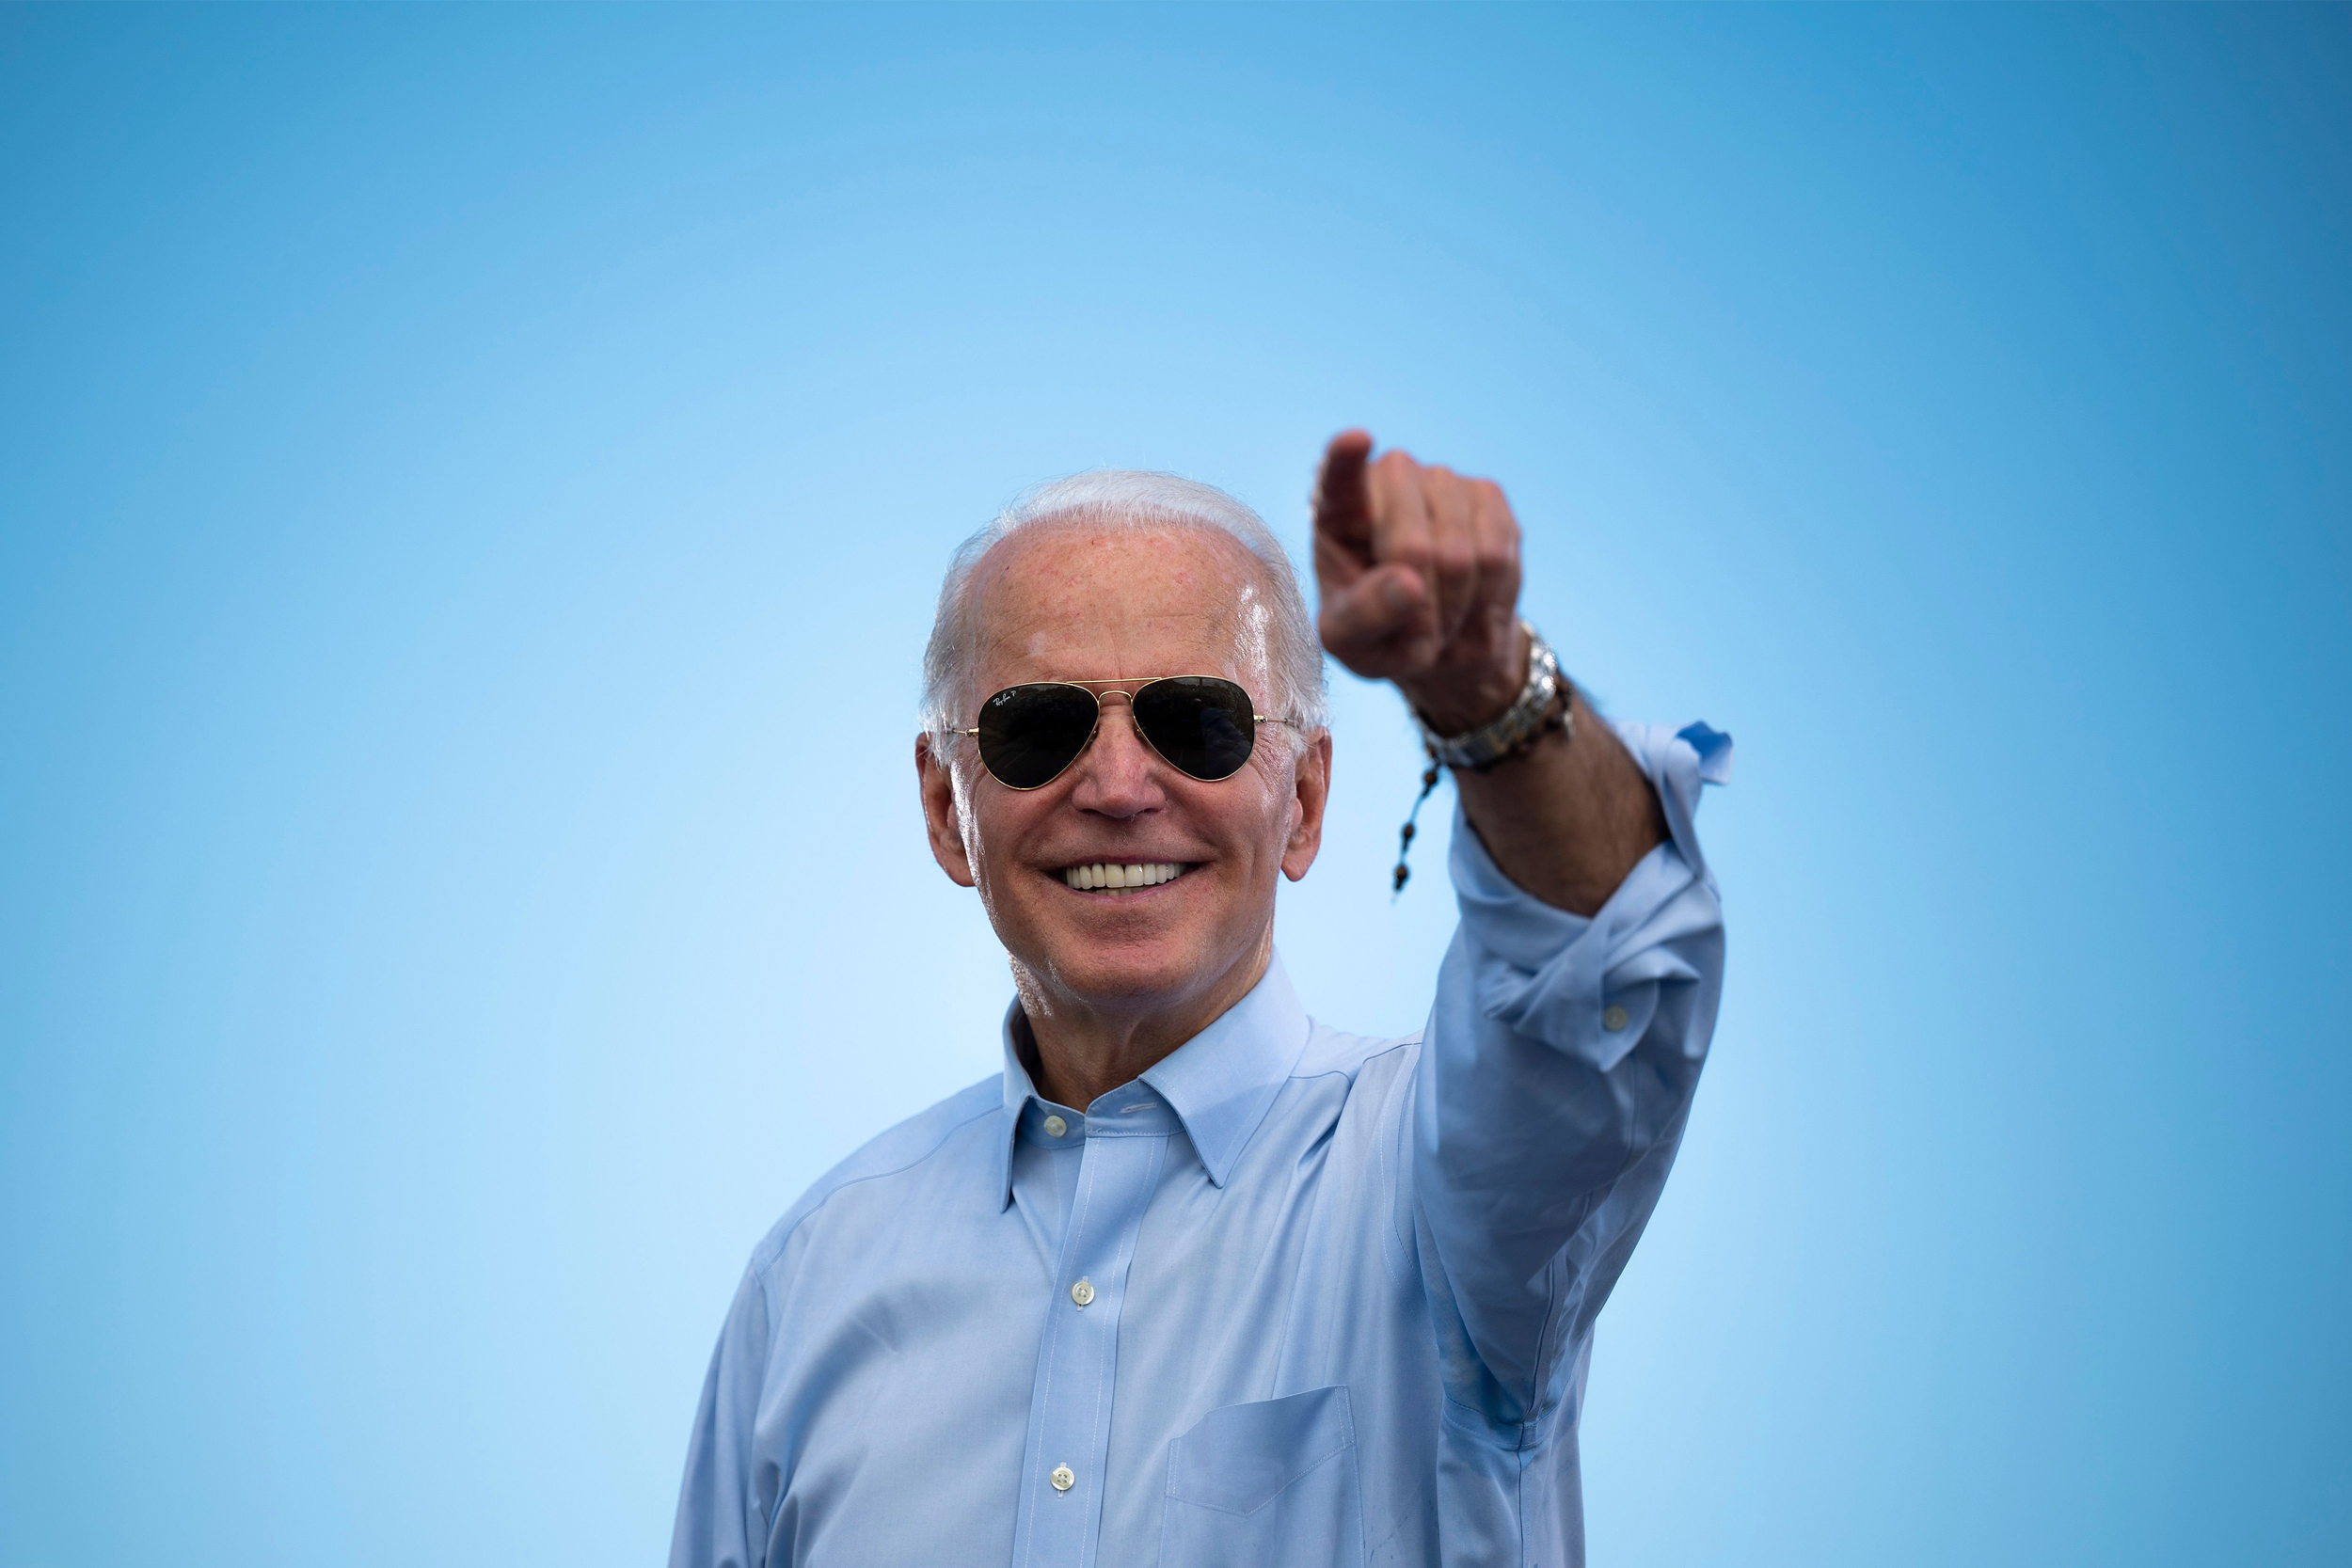 That's-a-lot-of-candles:-Biden-turns-78,-will-be-oldest-U.S.-president